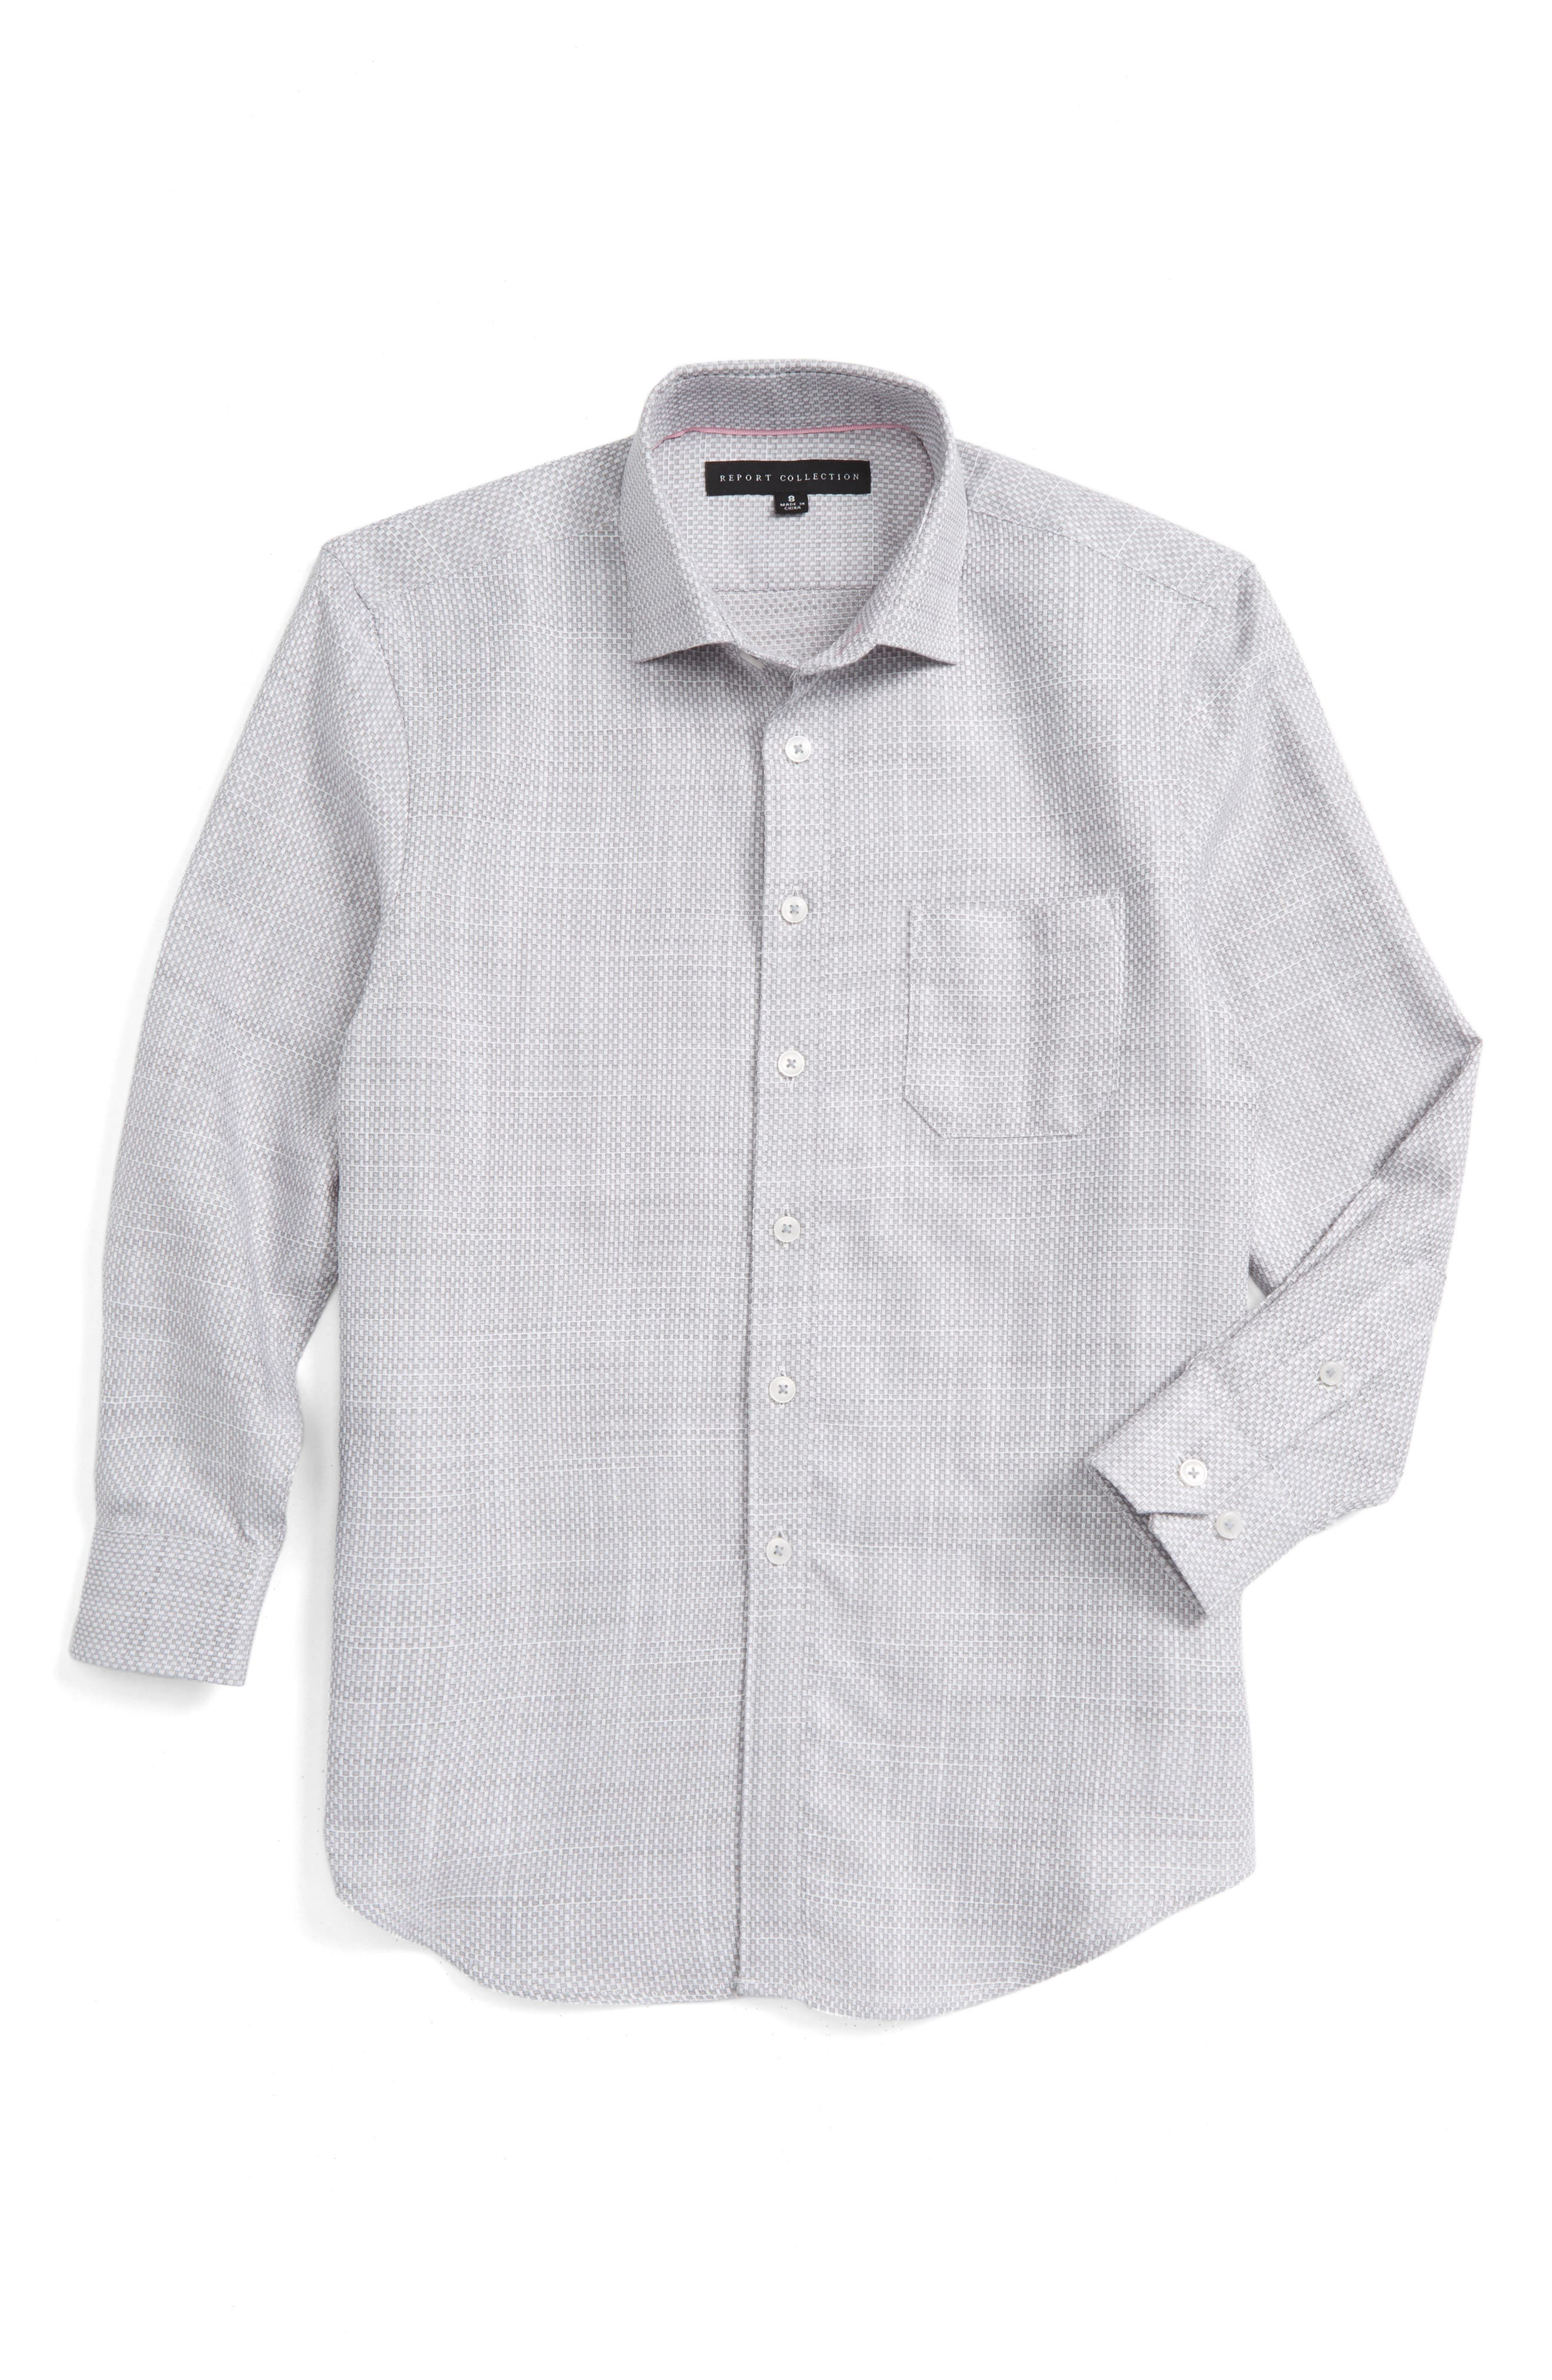 REPORT COLLECTION Woven Dress Shirt